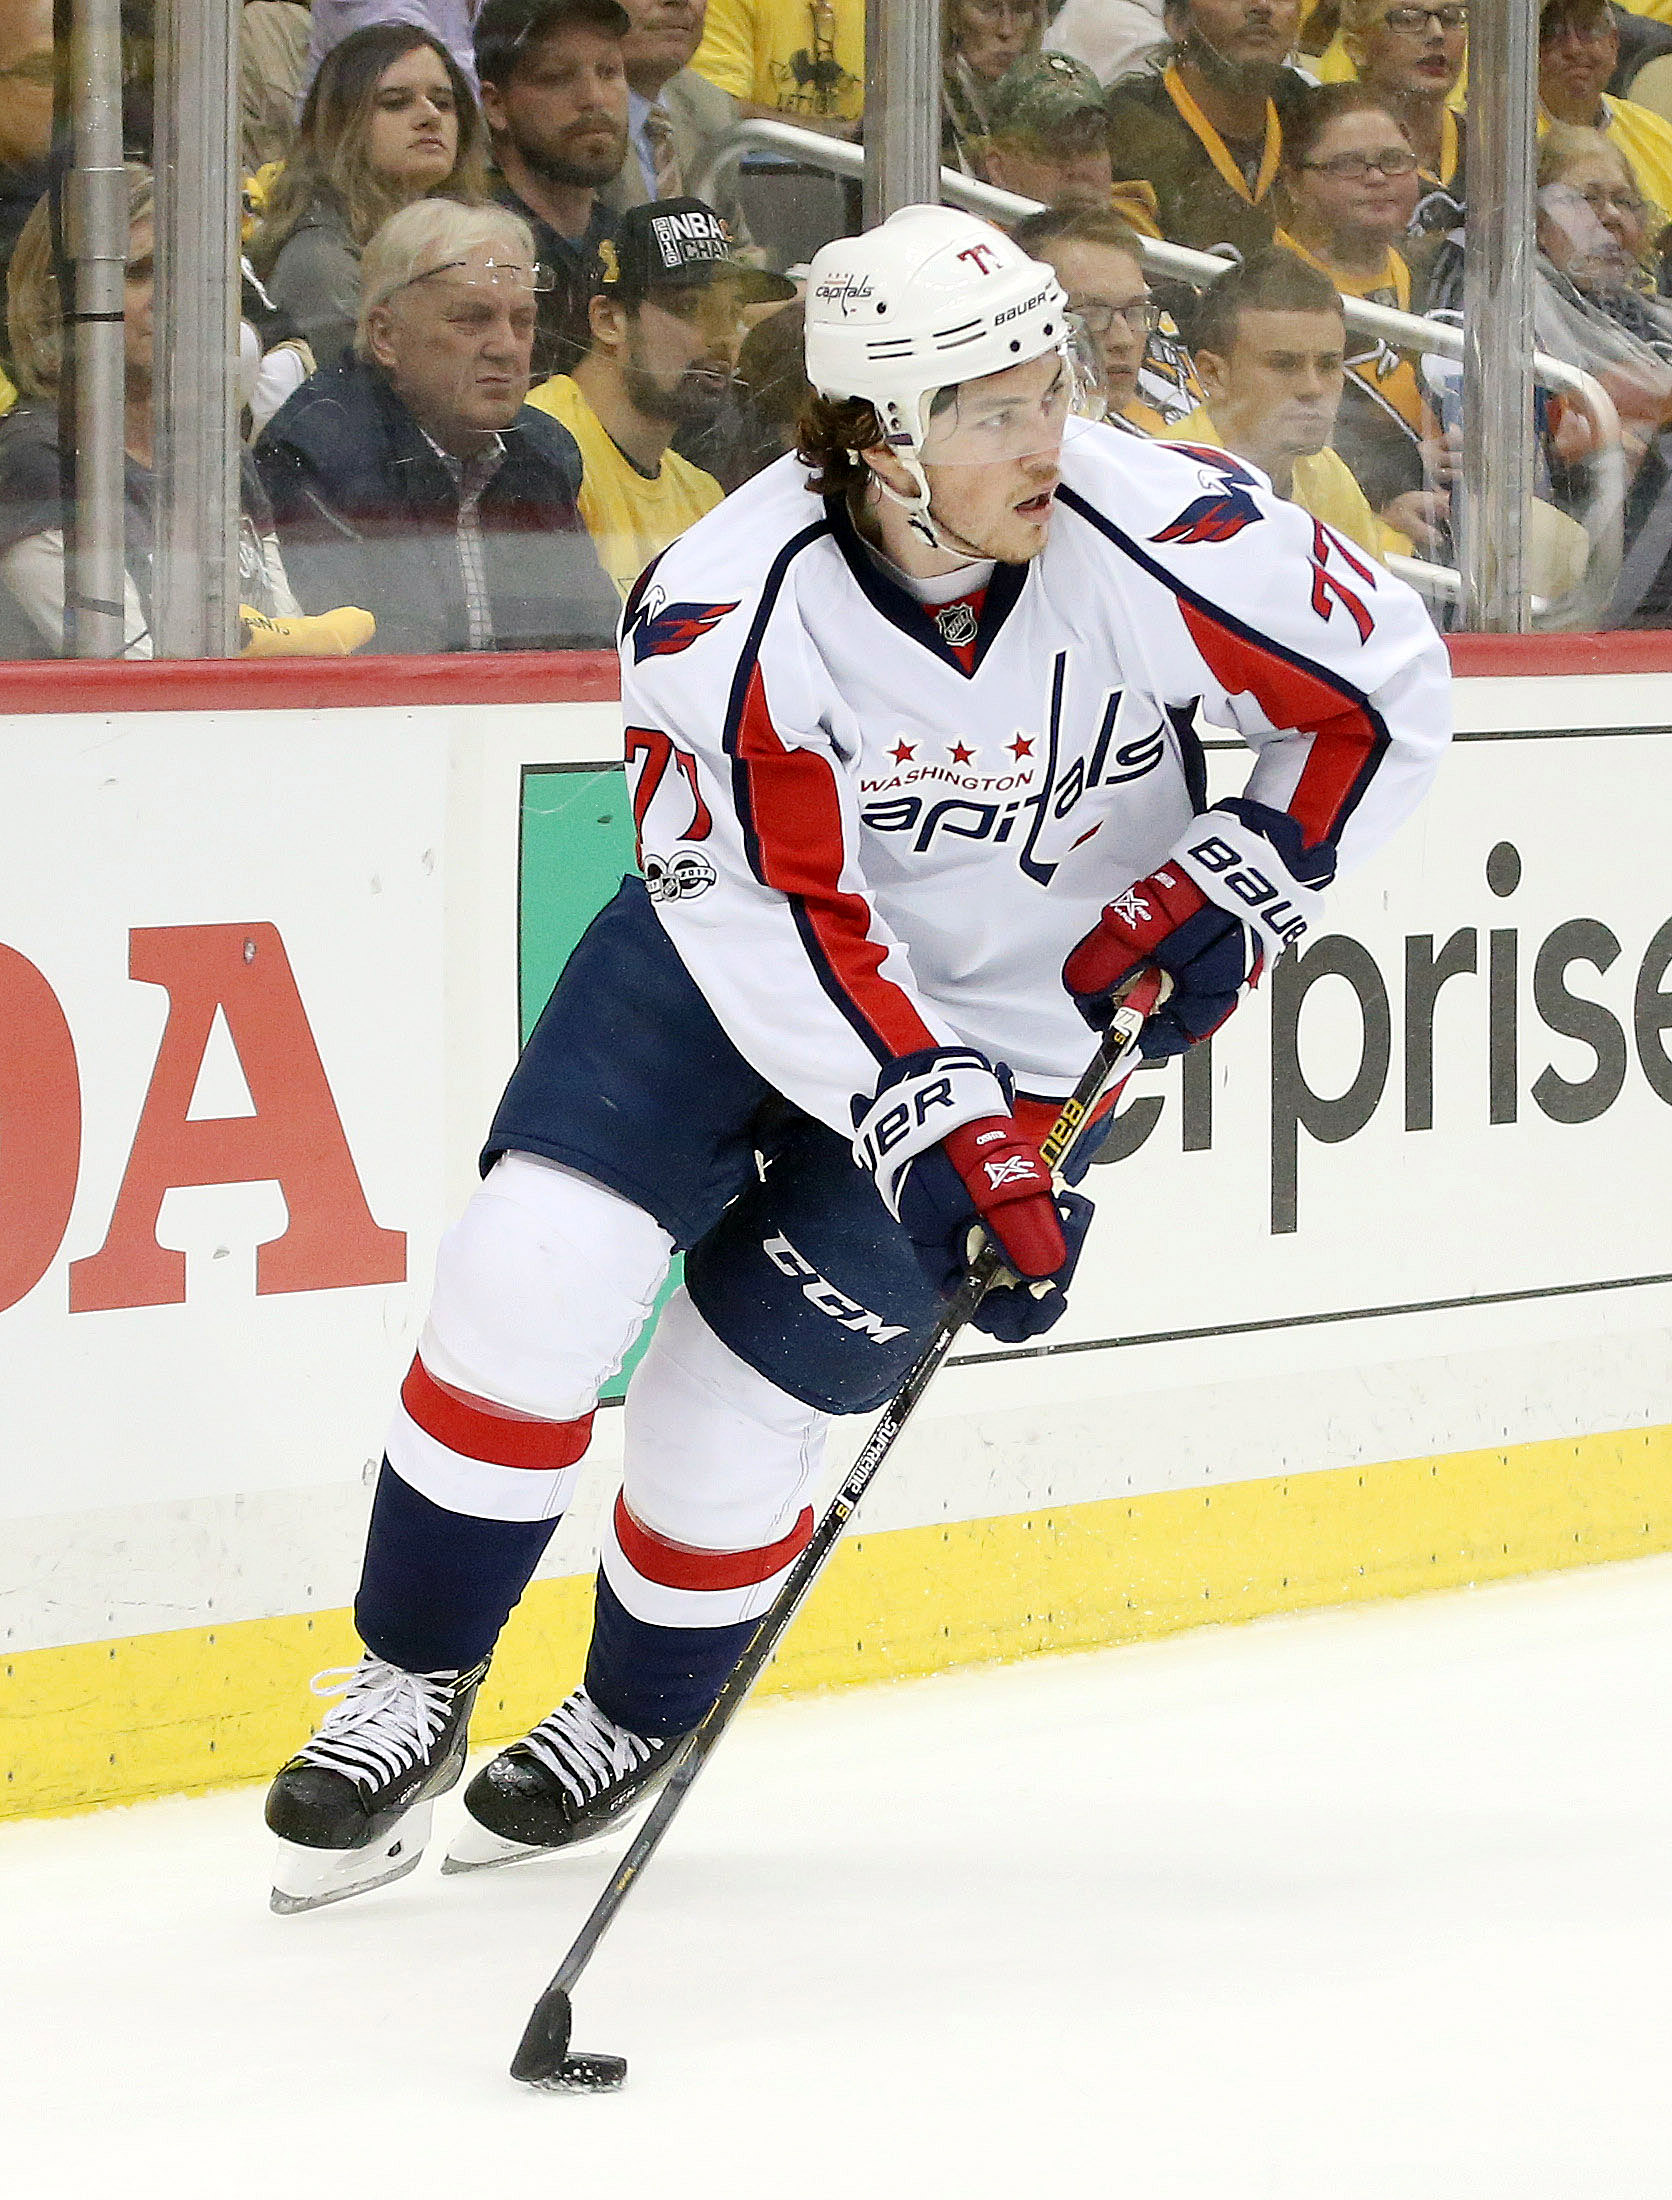 f313abff447 There had been clear interest from both sides between Oshie and the Capitals  since the end of the season